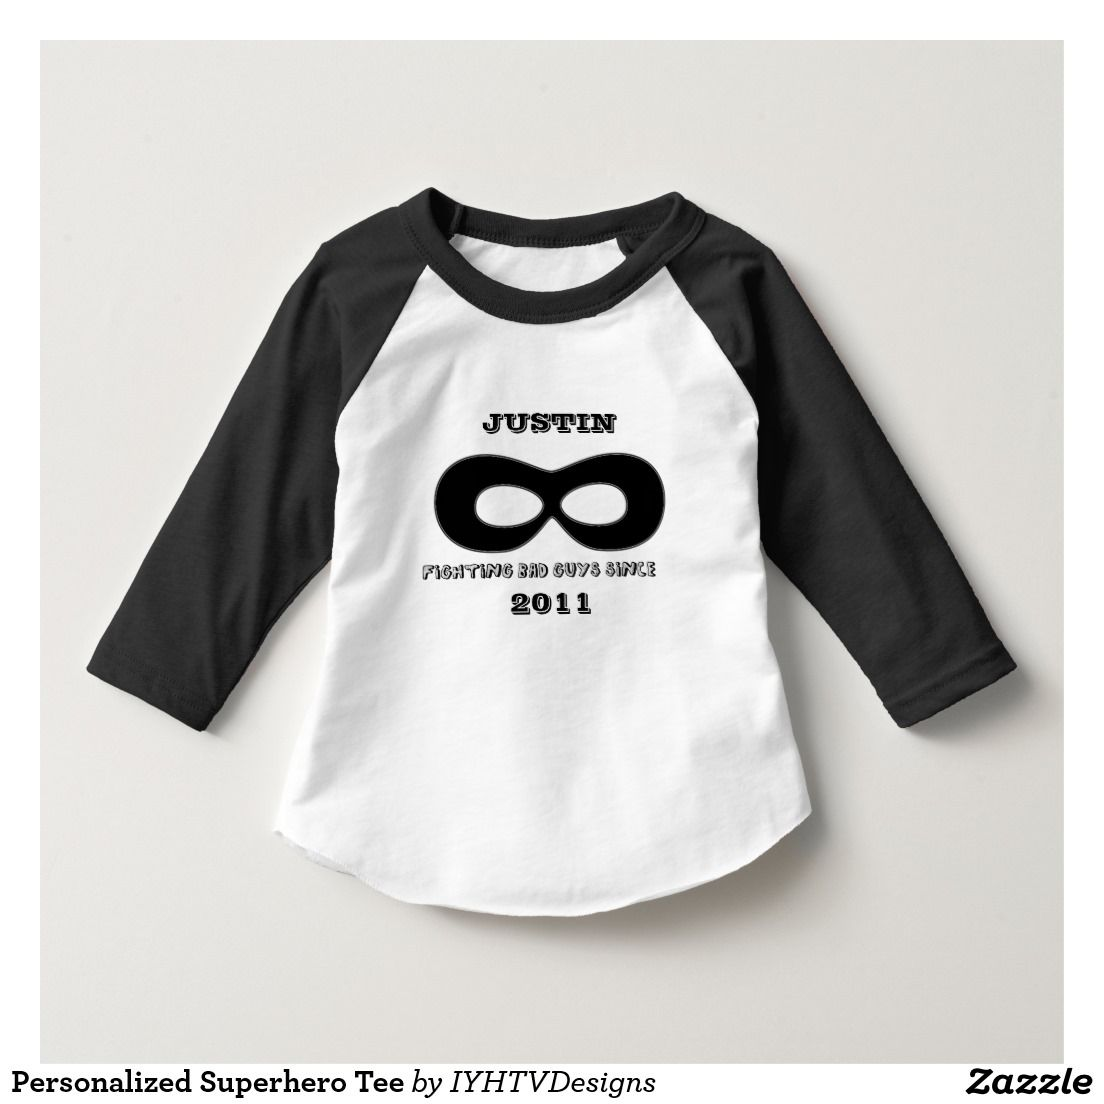 Personalized Superhero Tee